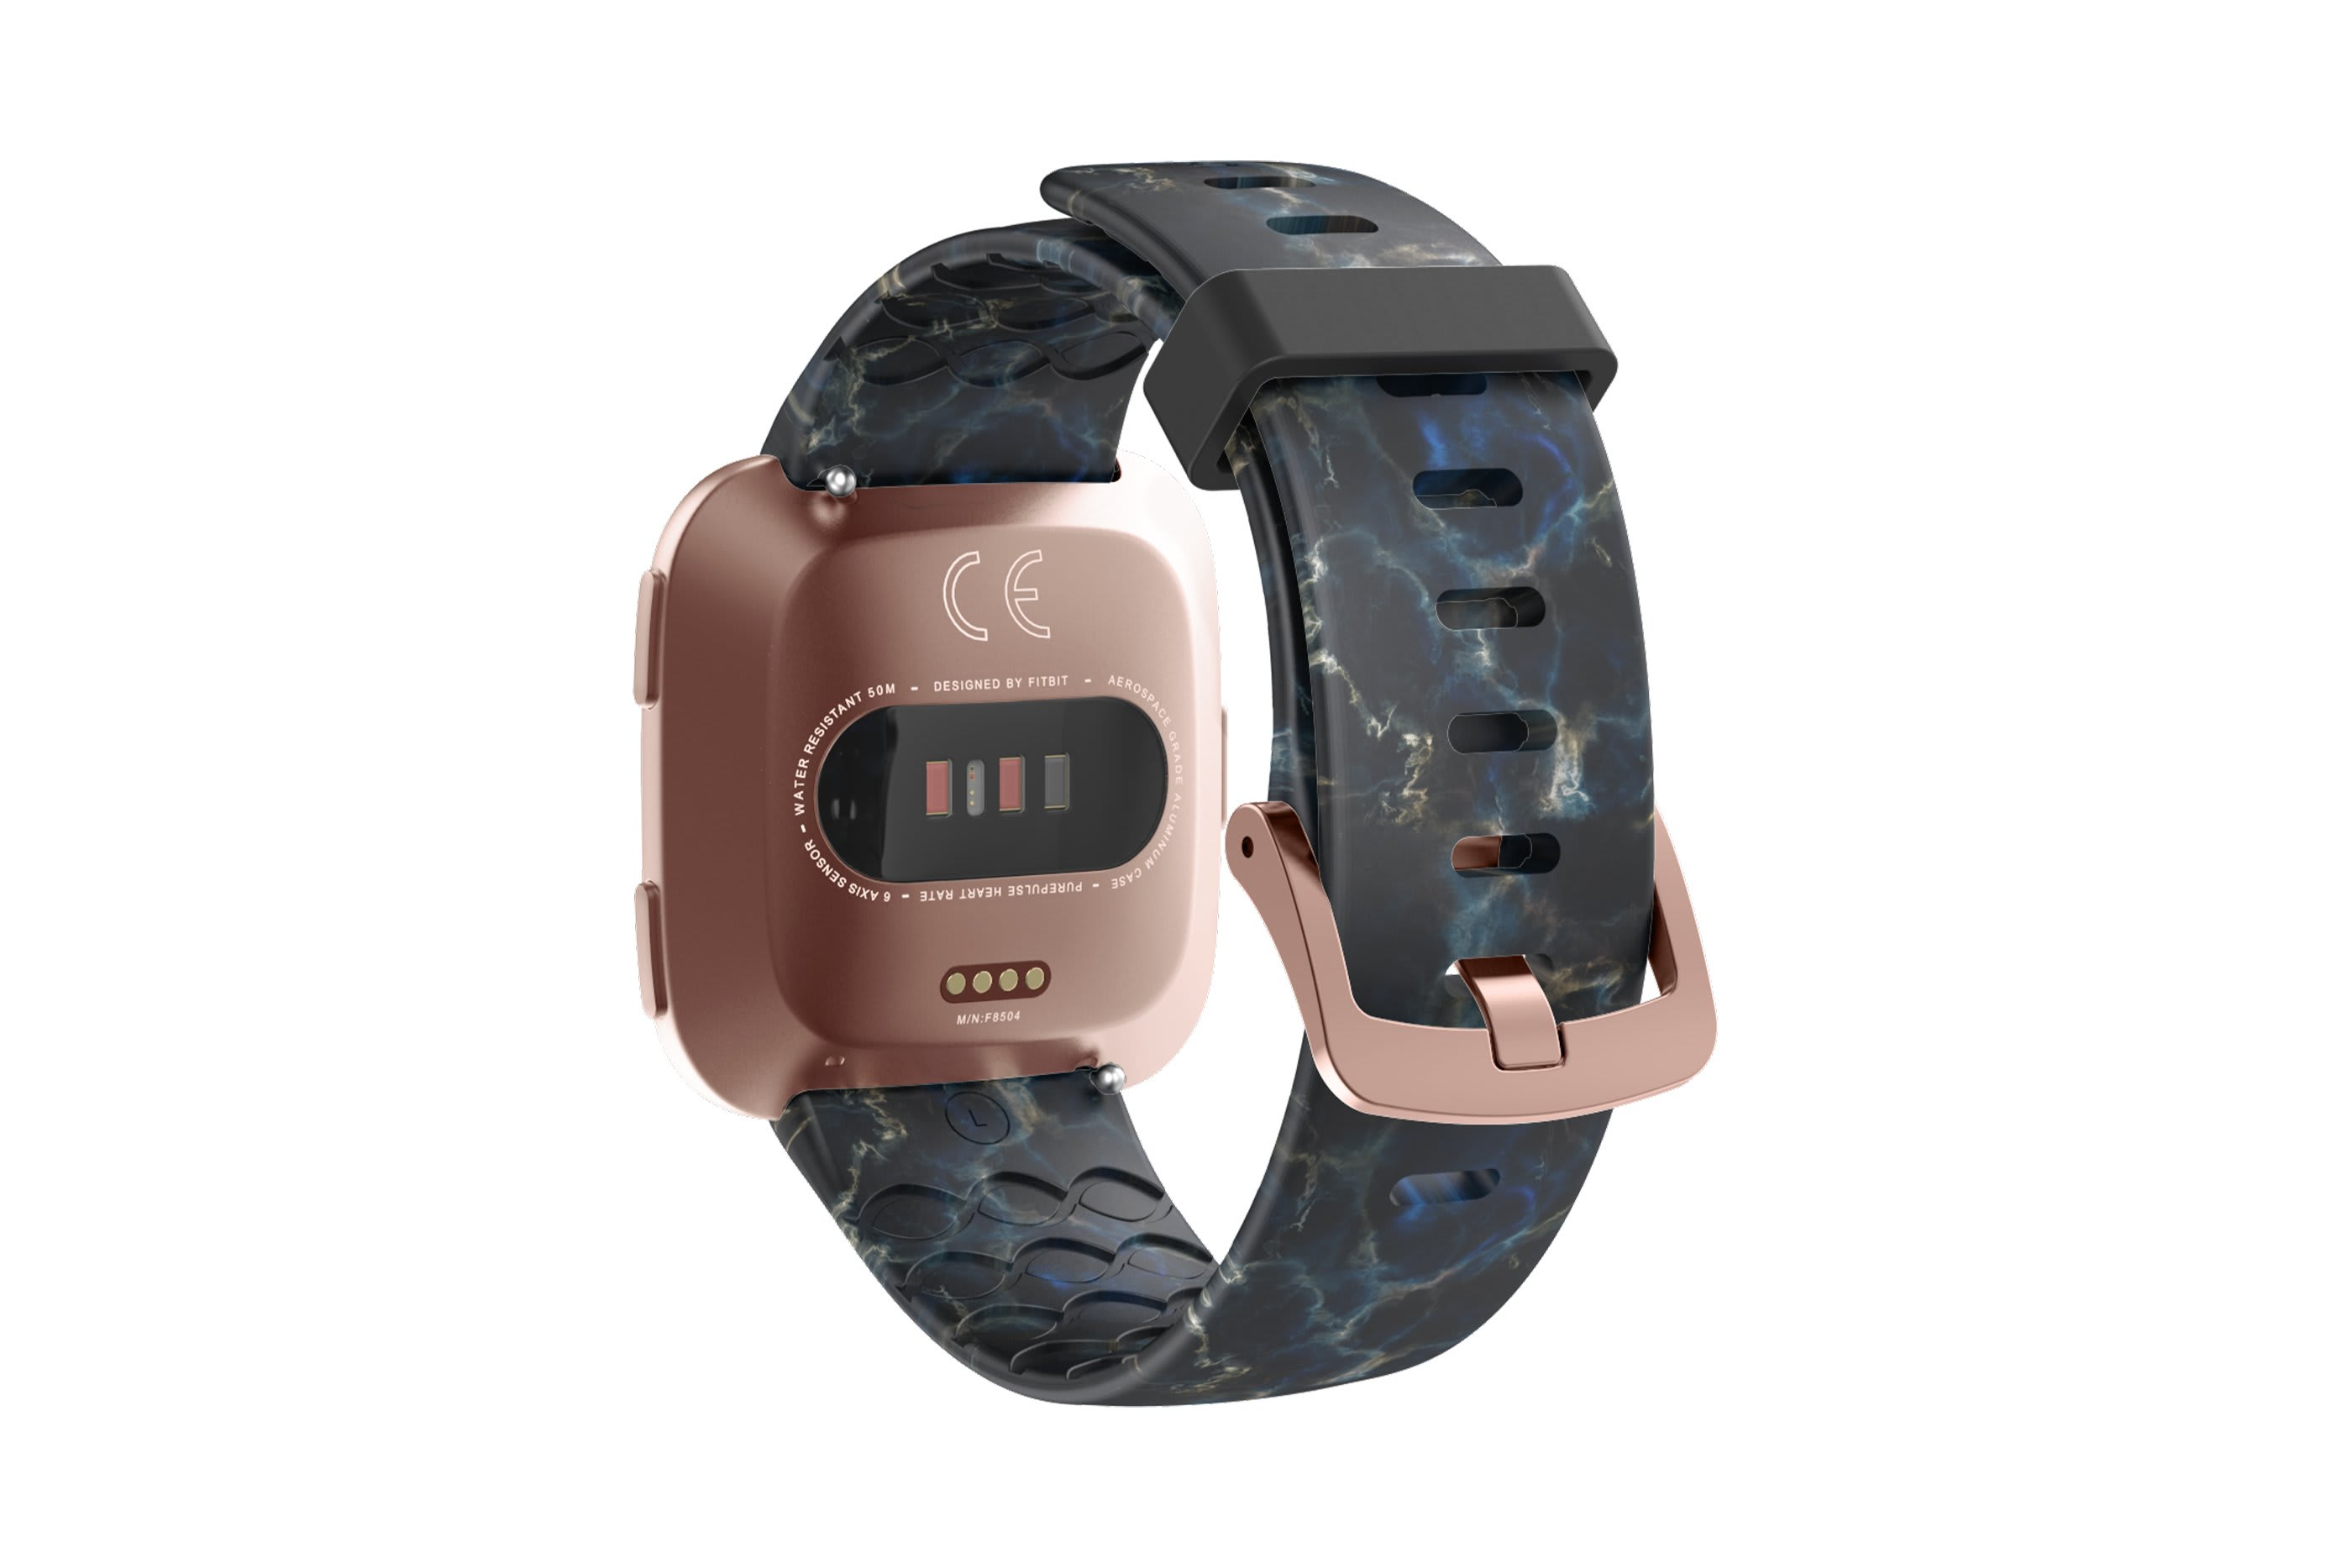 Nomad Rapids fitbit versa watch band with rose gold hardware viewed from top down